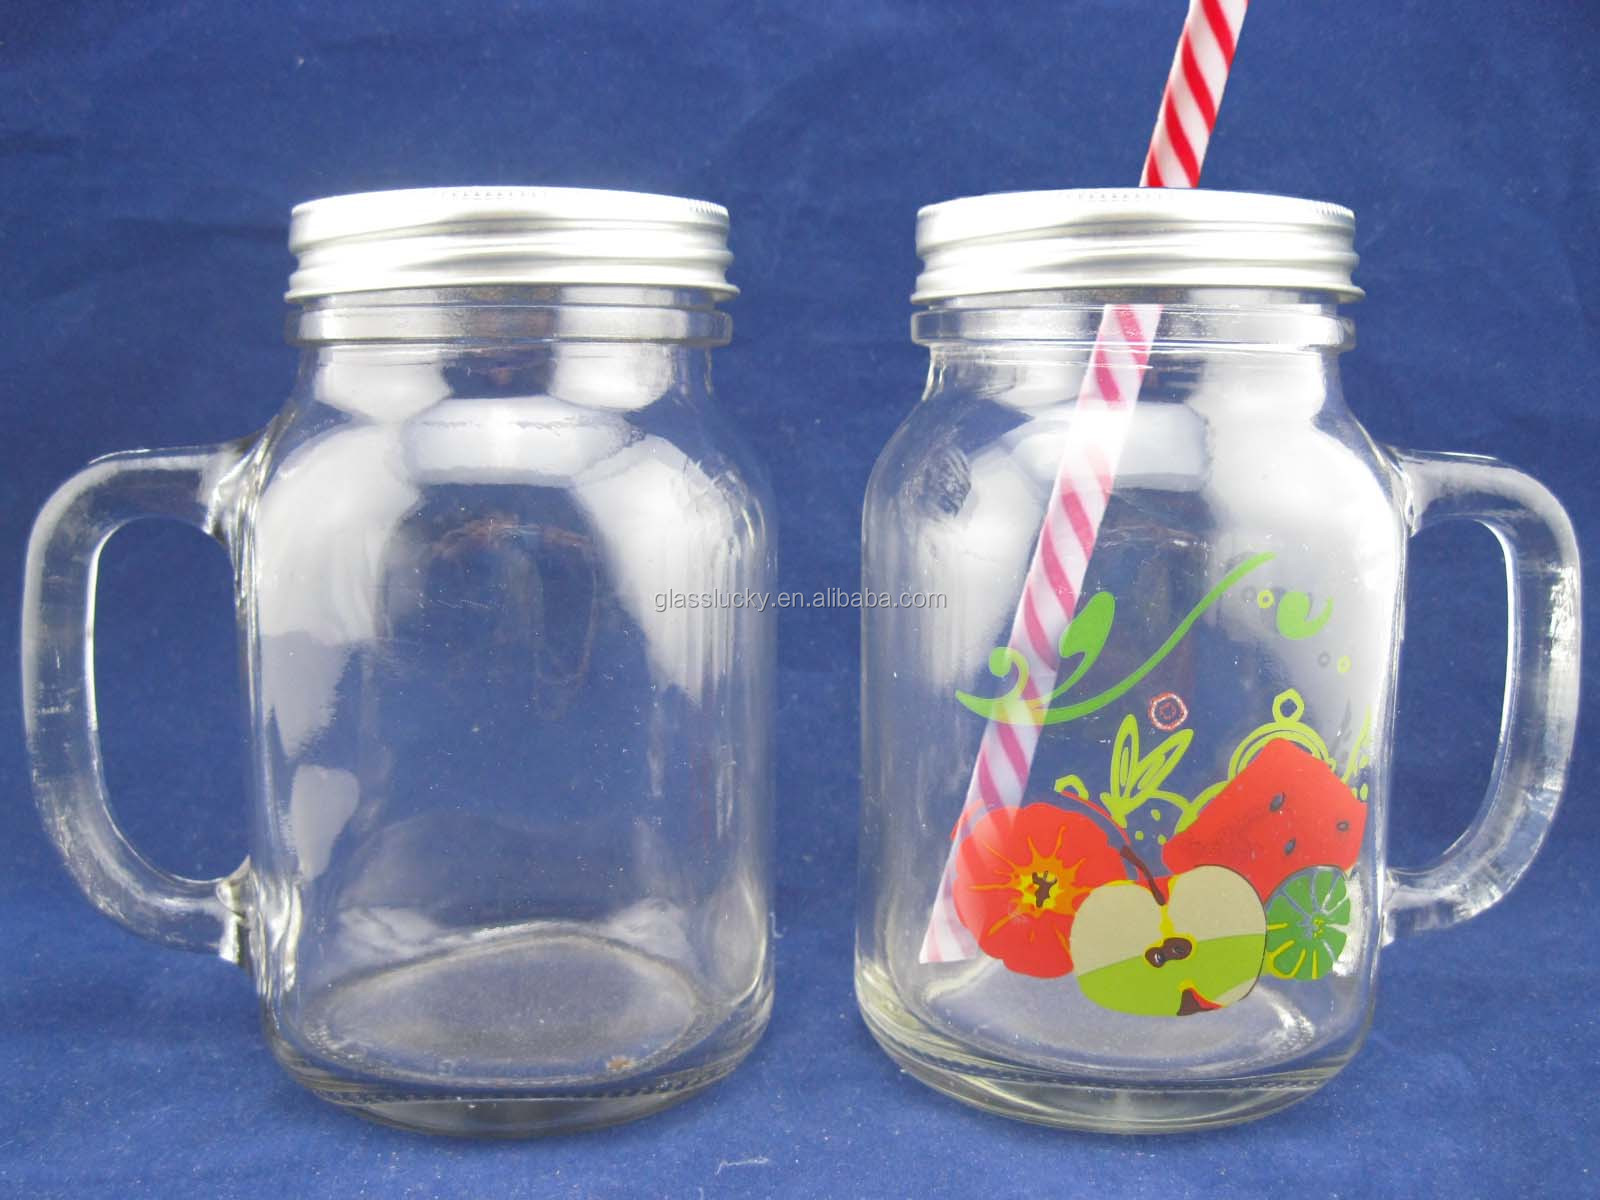 Jars On Sale Wholesale 16oz Glass Mason Jars With Straw Lid Popular In